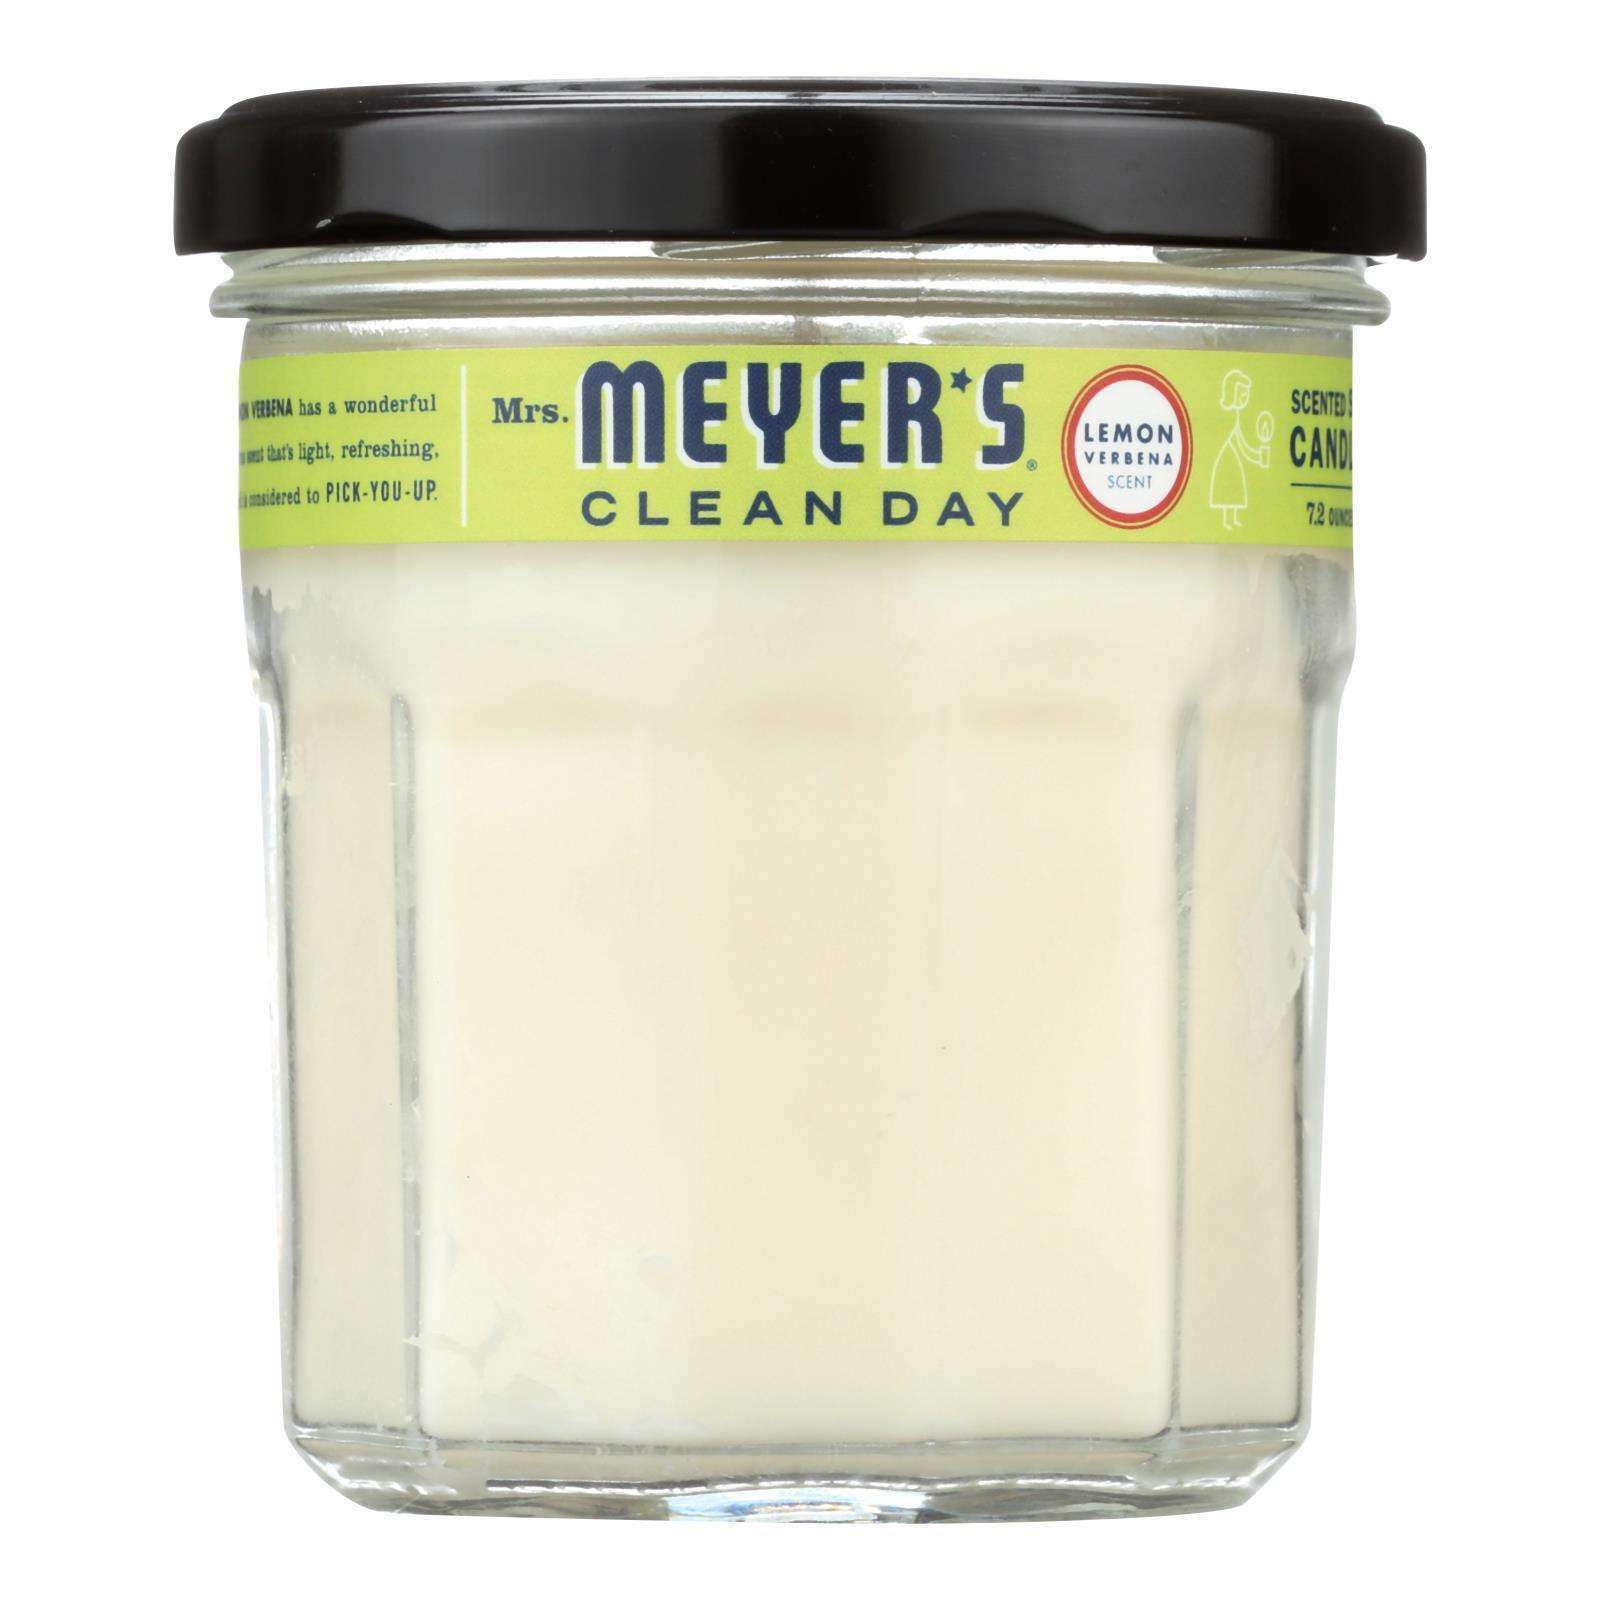 Mrs. Meyer's Clean Day - Soy Candle - Lemon Verbena - Case Of 6 - 7.2 Oz Candles - BeeGreen